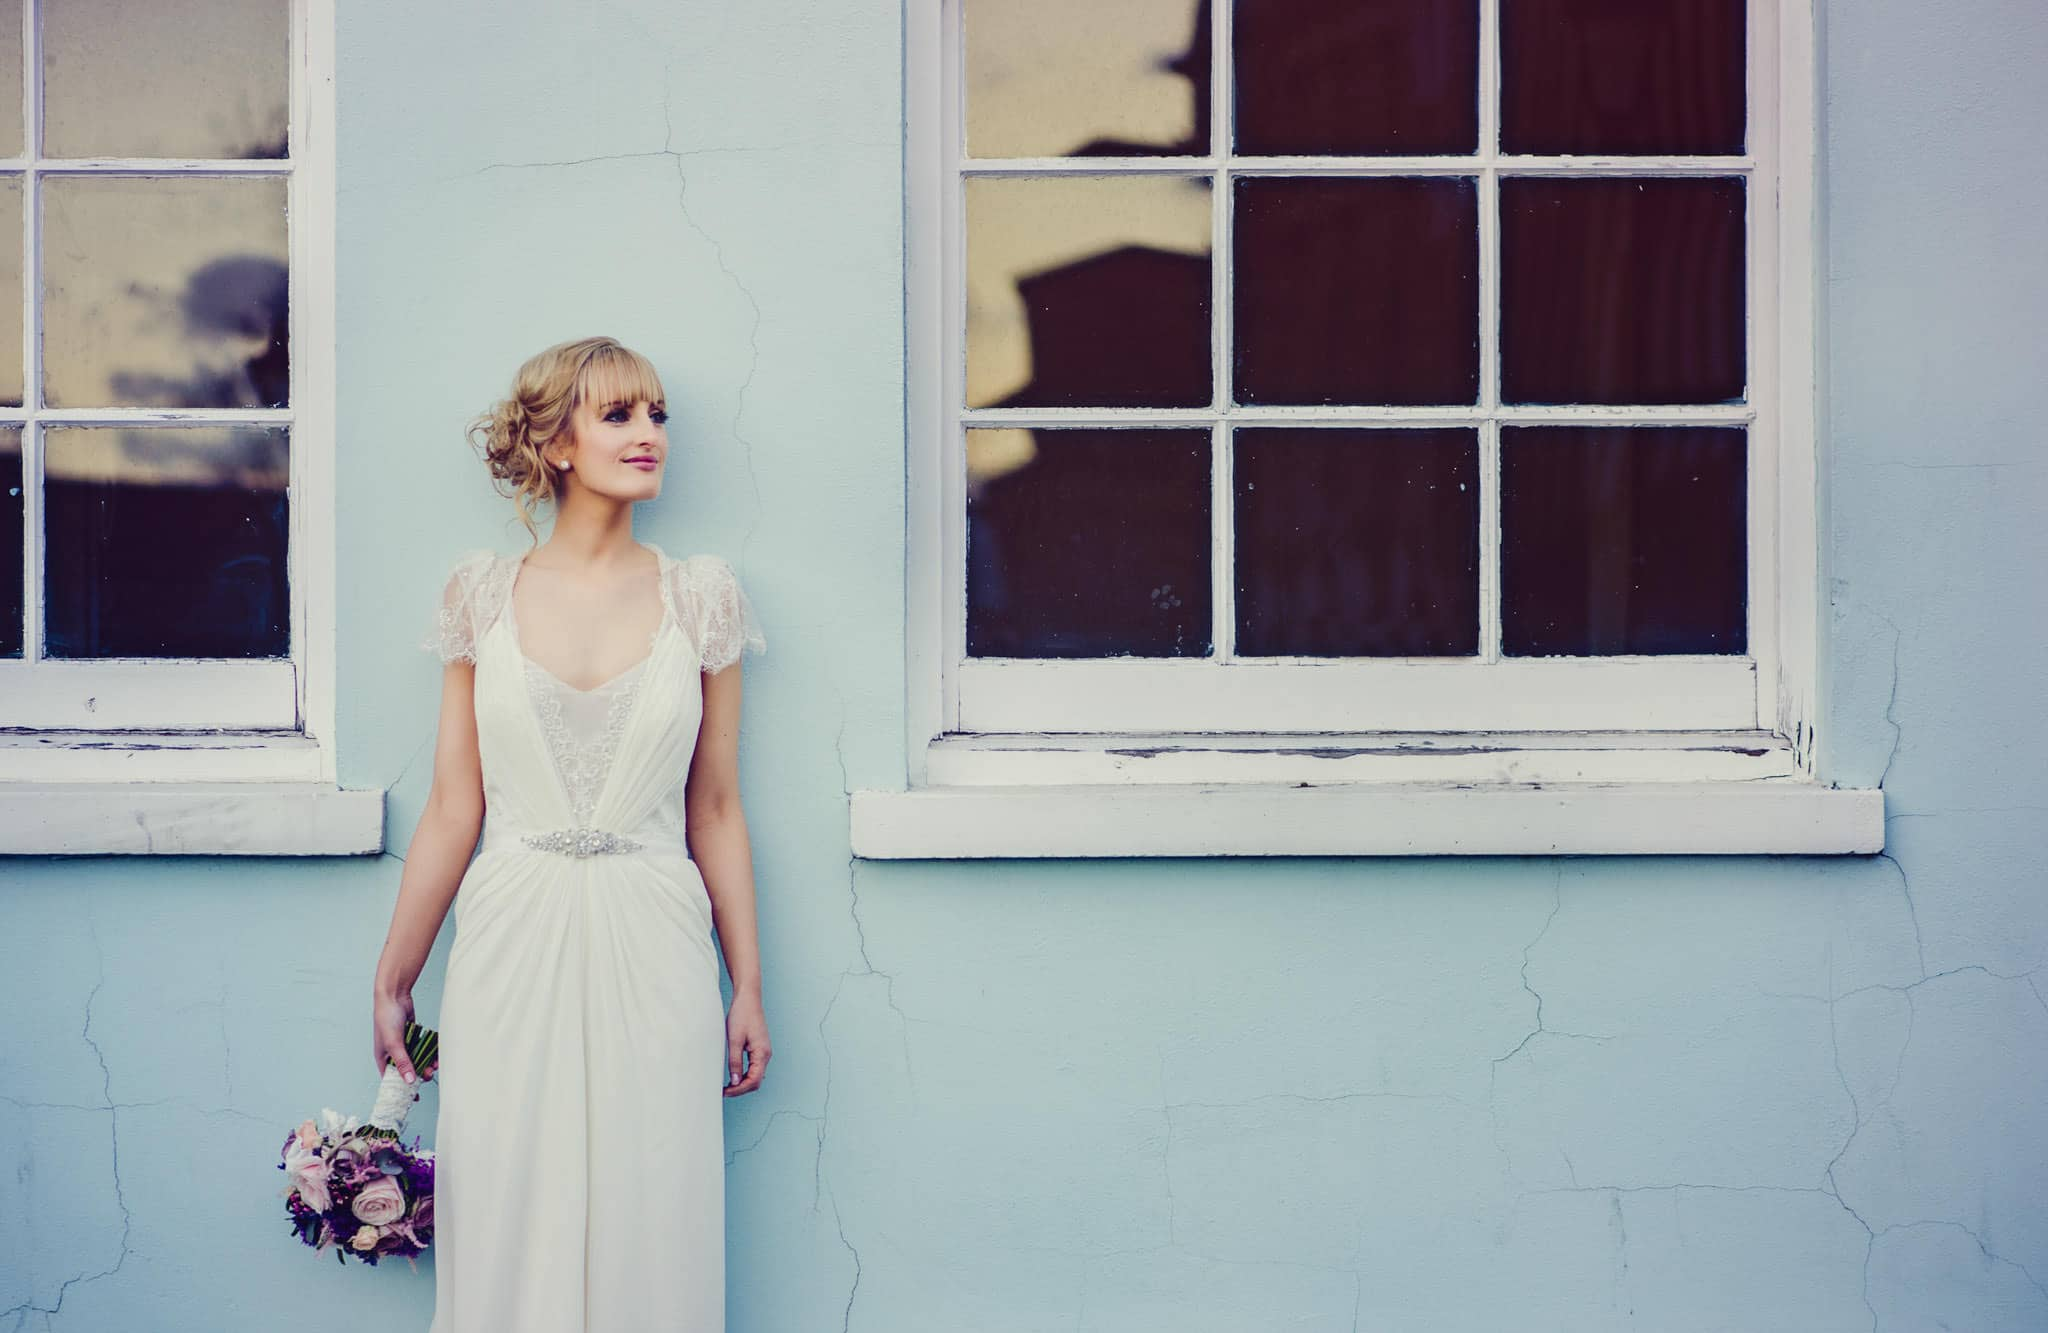 wedding-photography-morgans-hotel-swansea-south-wales (28)